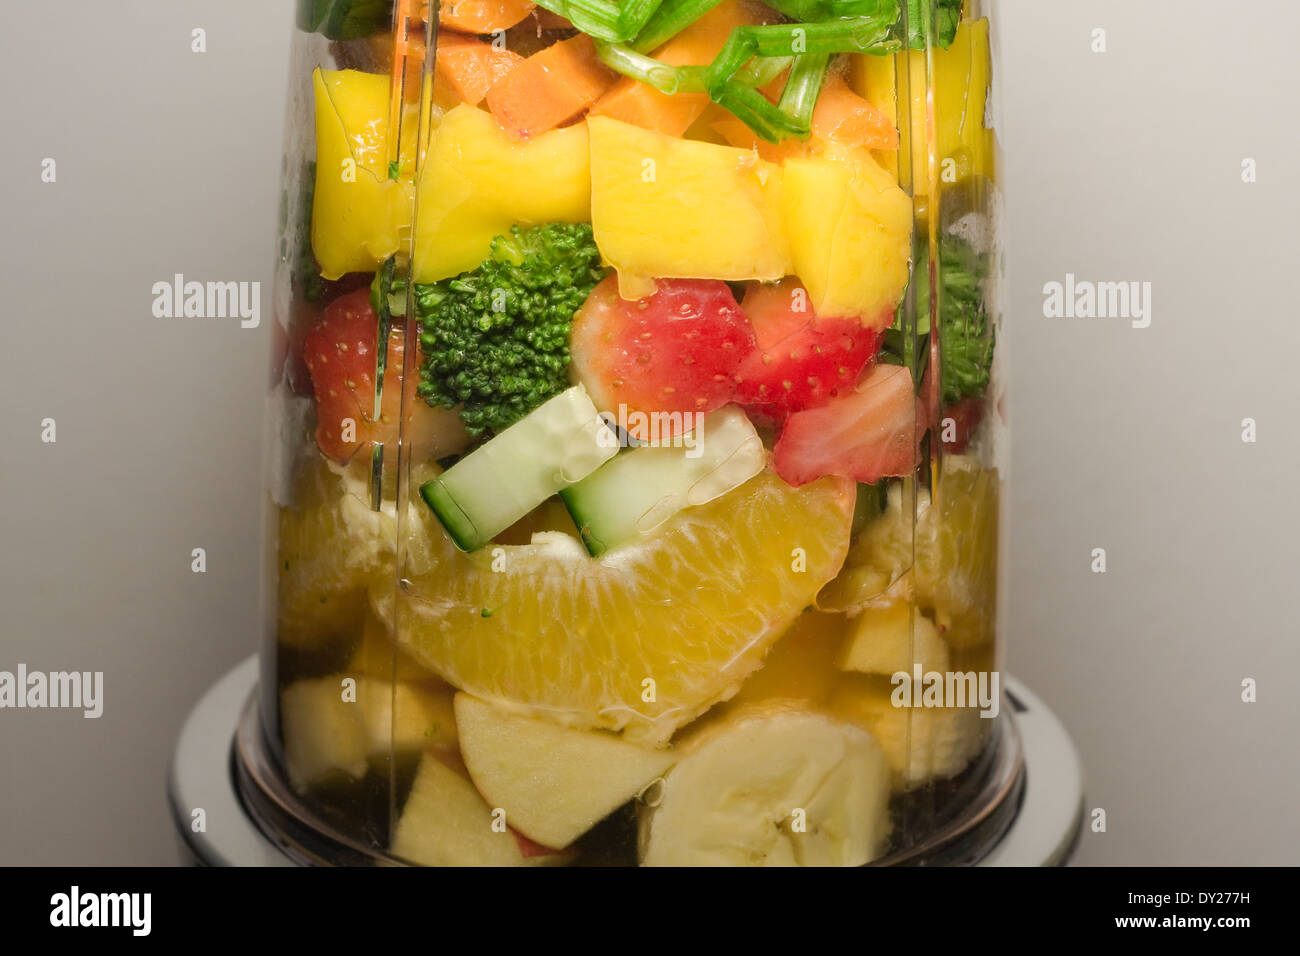 Various Fruits and Vegetables inside of a smoothie machine waiting to be pulverized  (f/8) - Stock Image